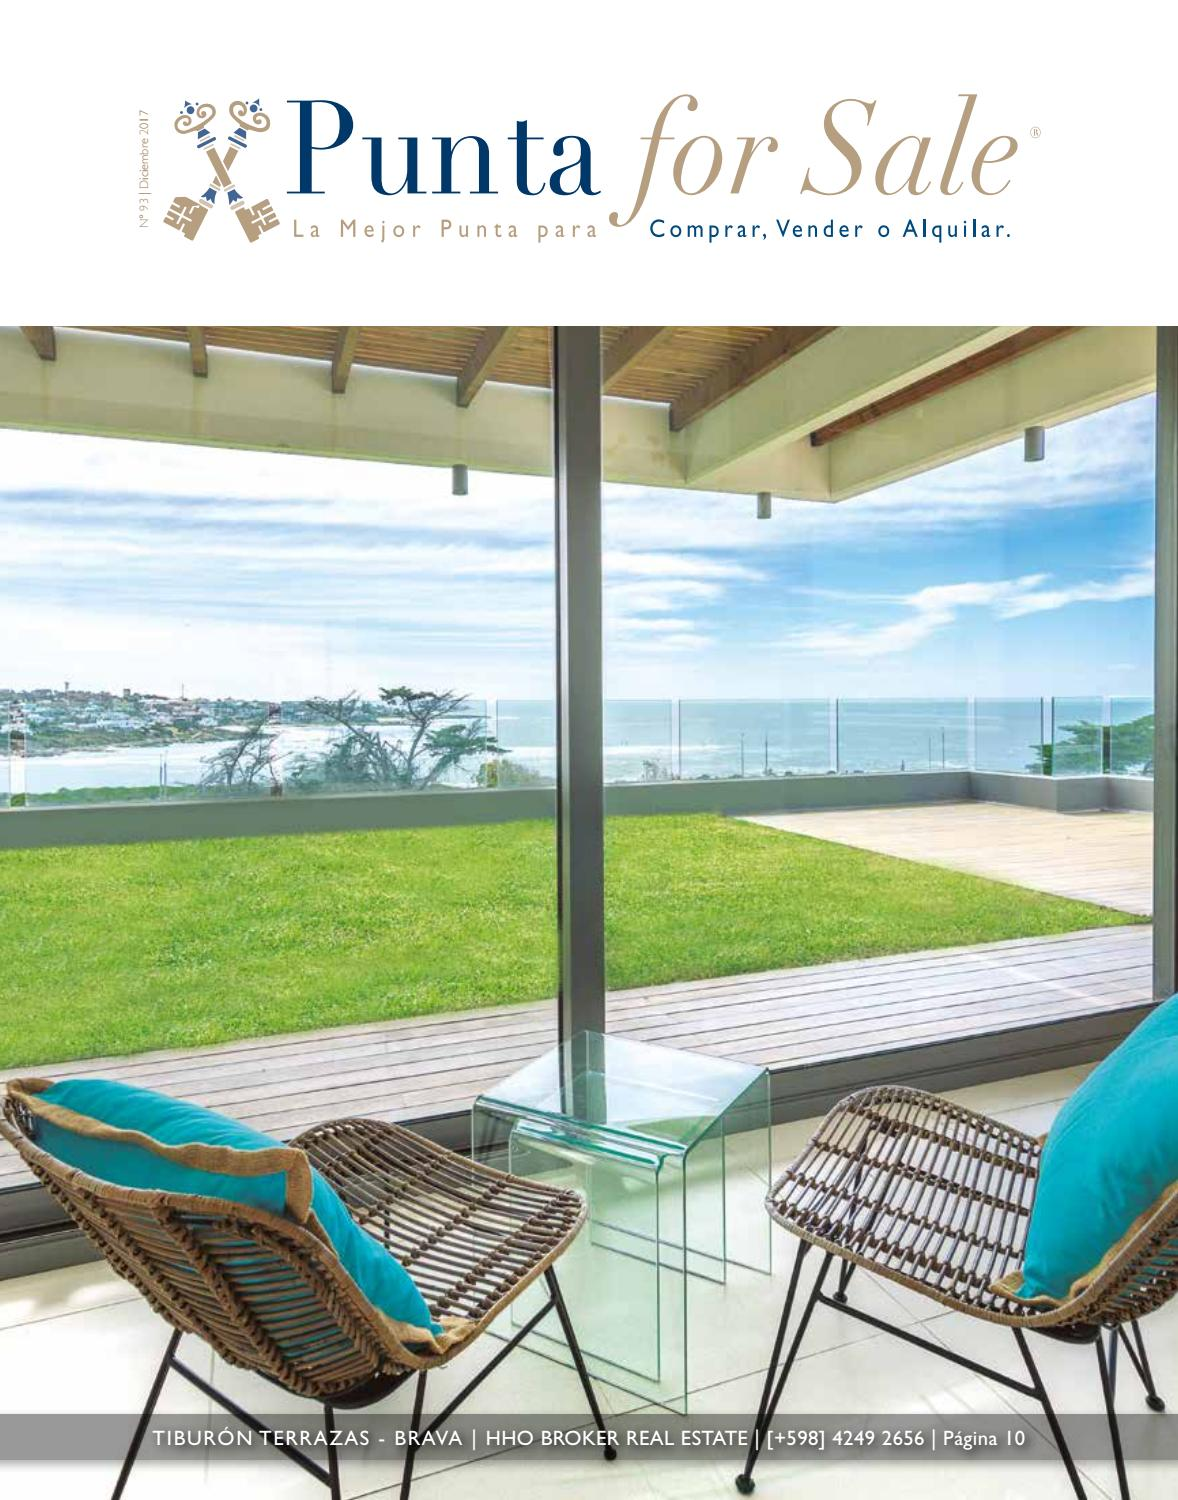 Revista de Real Estate Punta For Sale, edición #93 Diciembre 2017